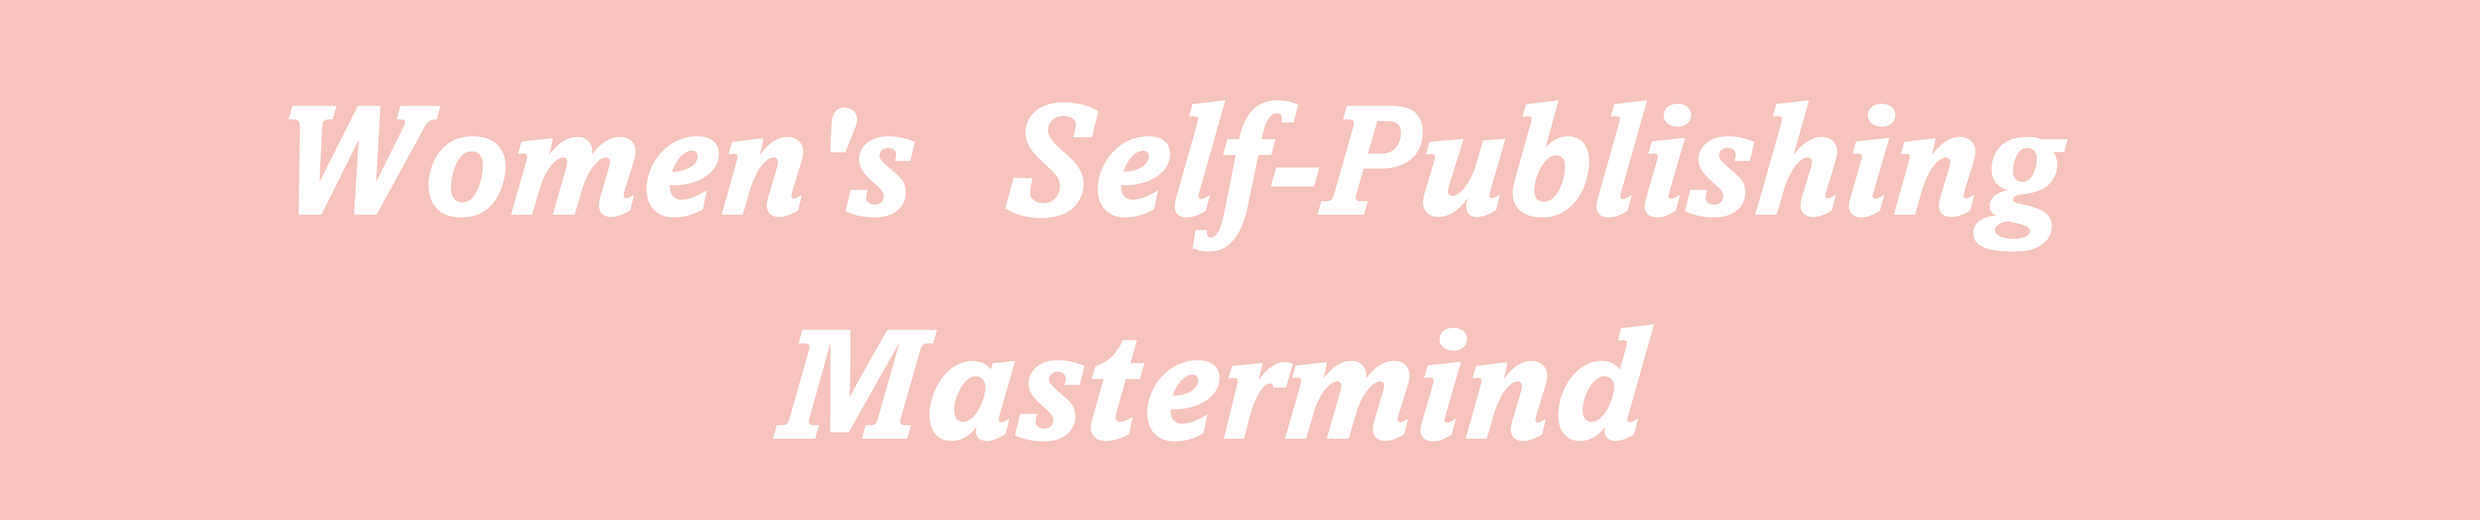 Women's Self-Publishing Mastermind Website Header.png